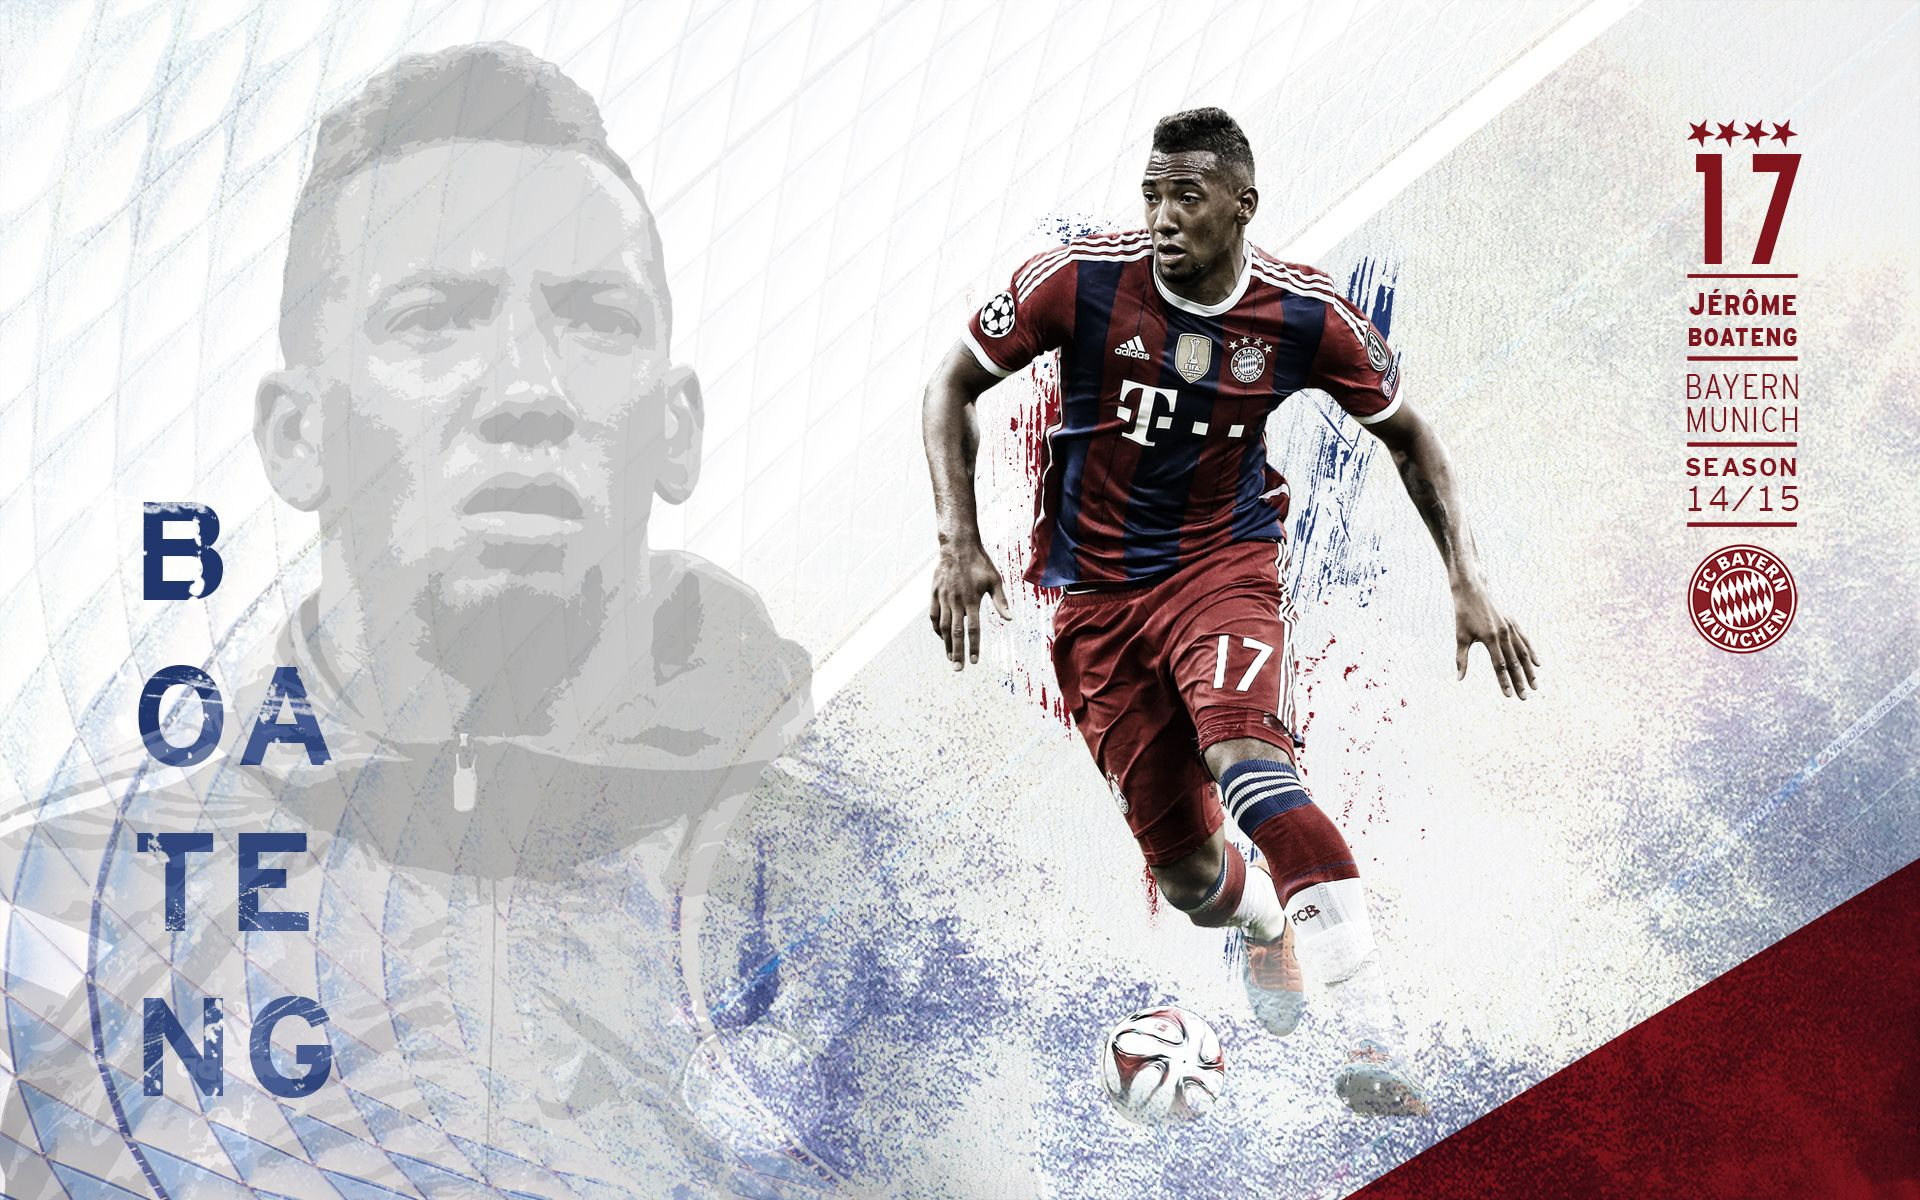 Jerome Boateng Wallpapers Find best latest Jerome Boateng 1920x1200